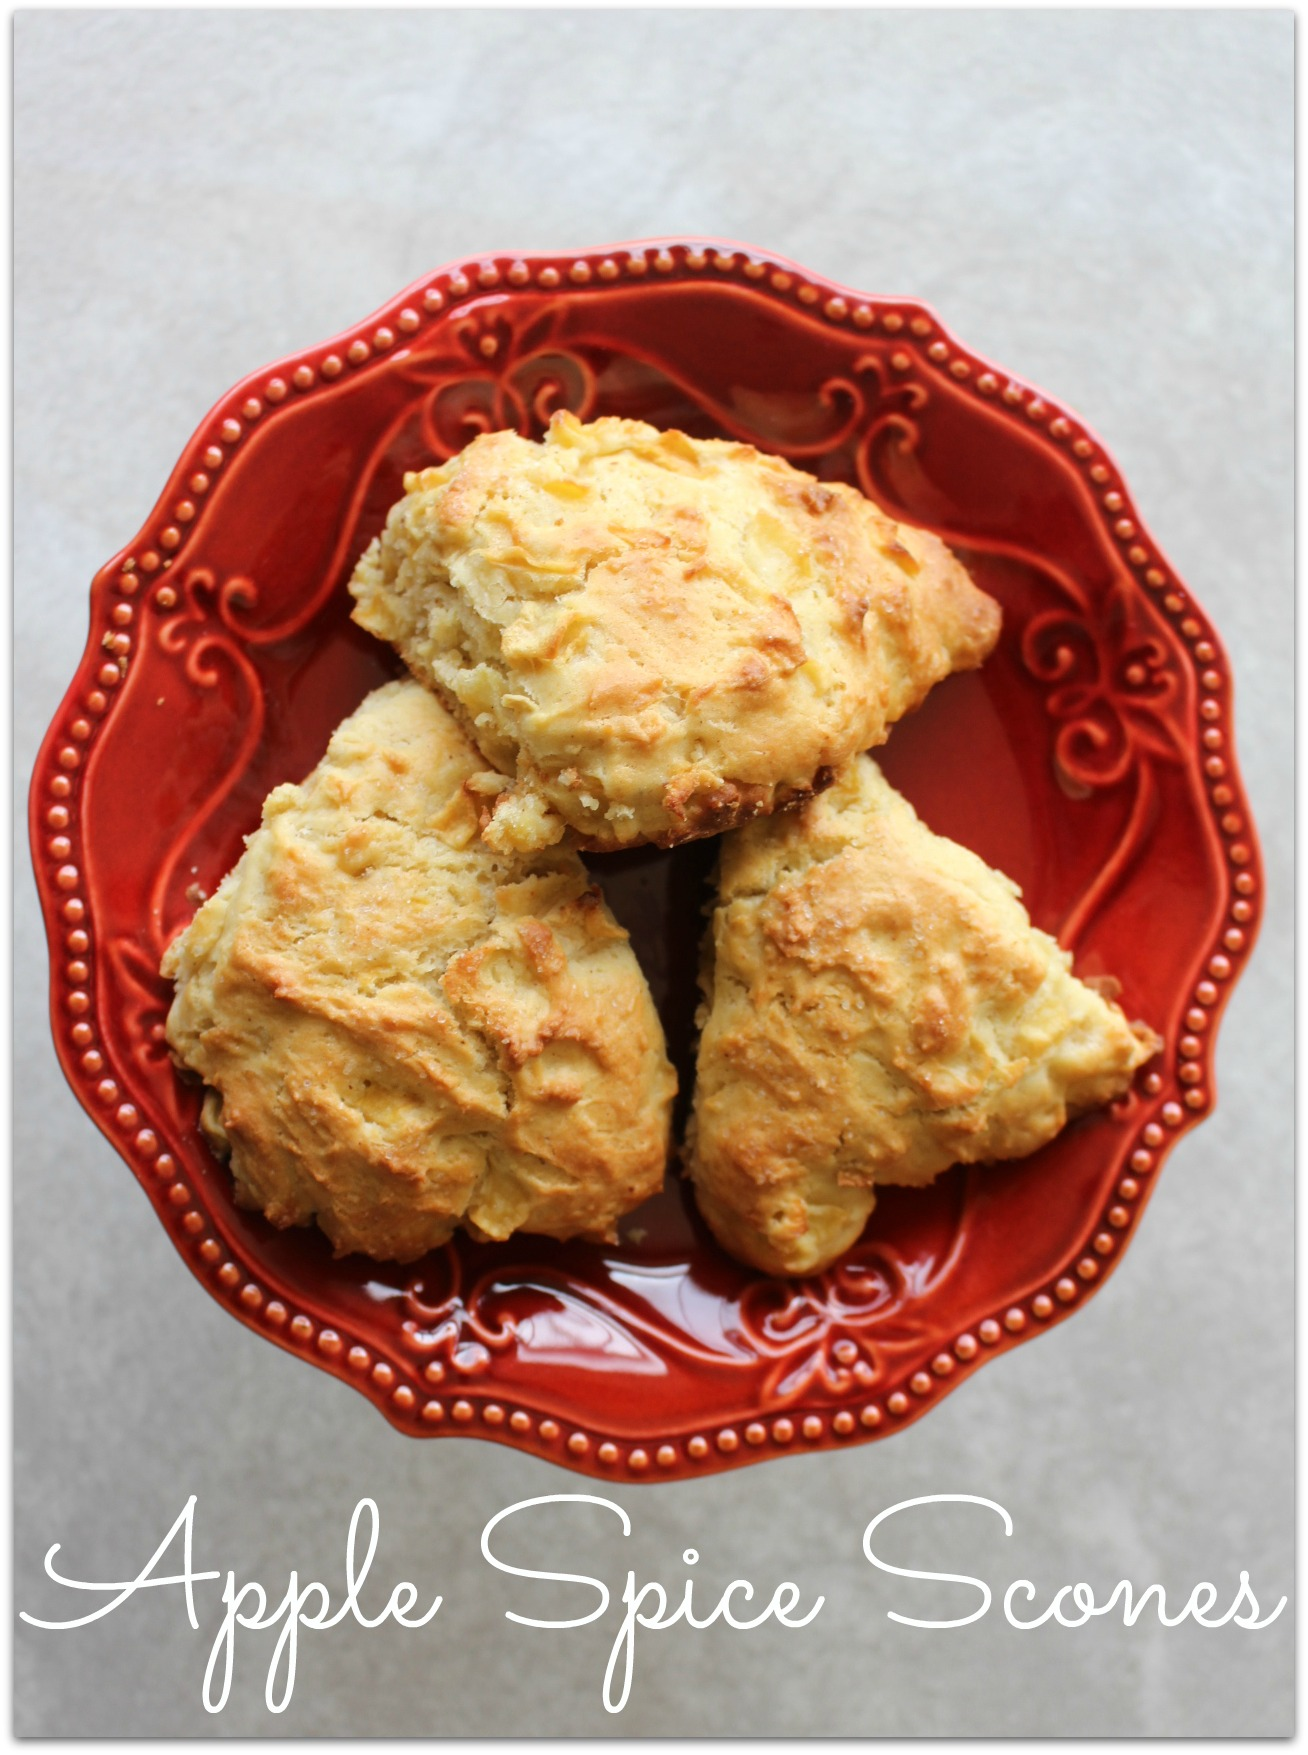 Apple Spice Scones on a red plate